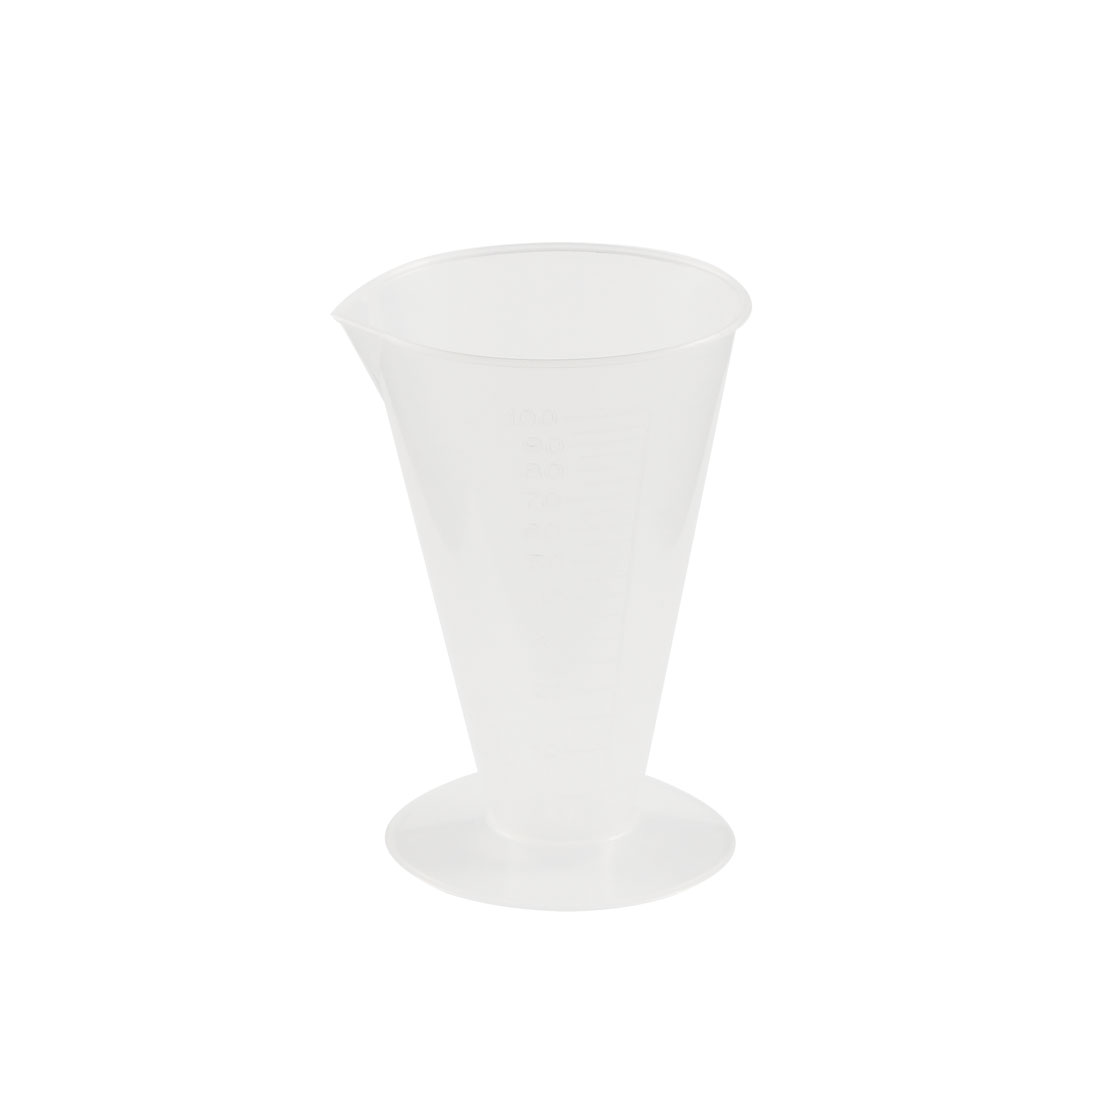 Laboratory 25mL Measurement Plastic Conical Shape Measure Cup